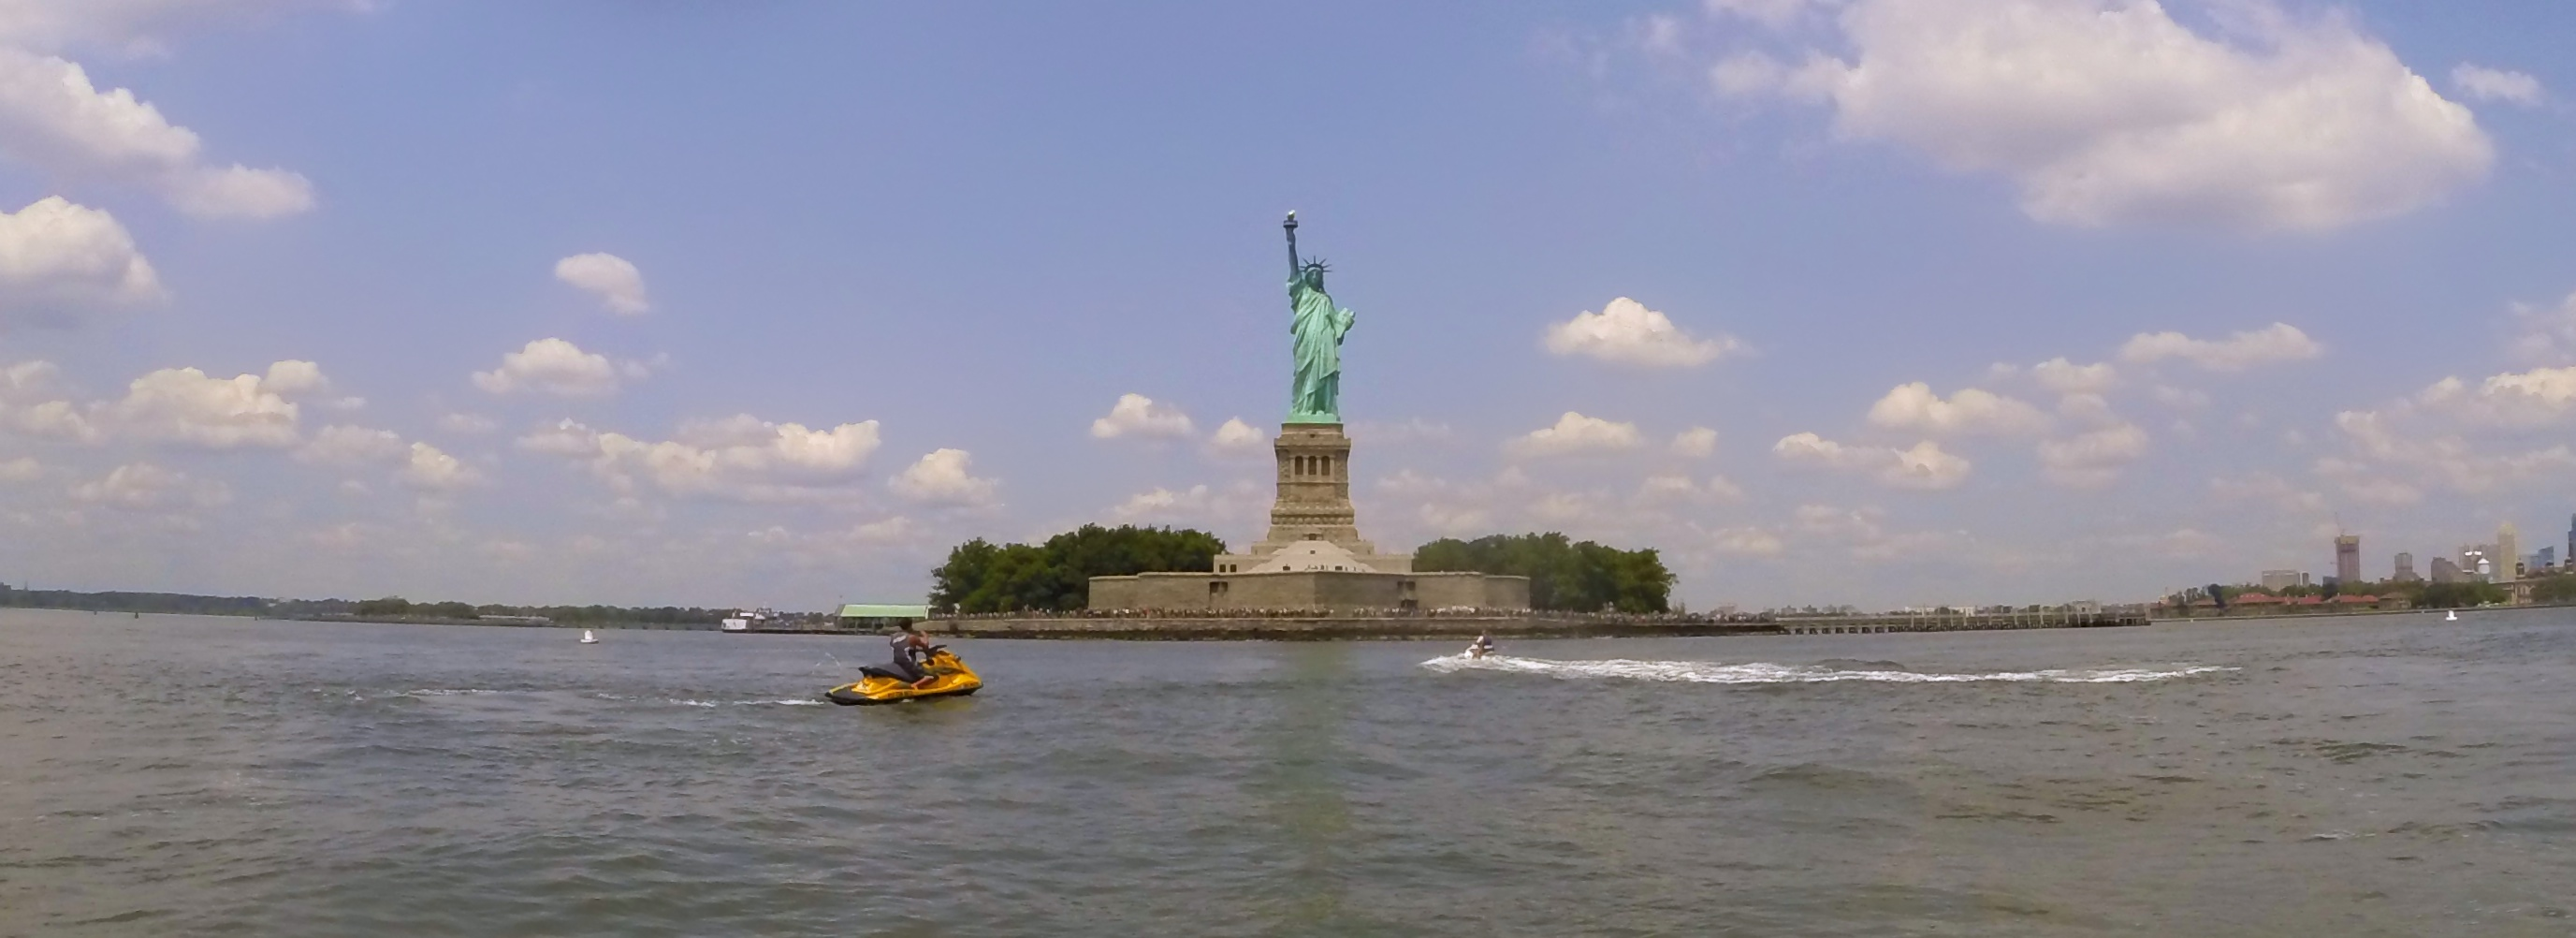 statue of liberty jet ski nyc